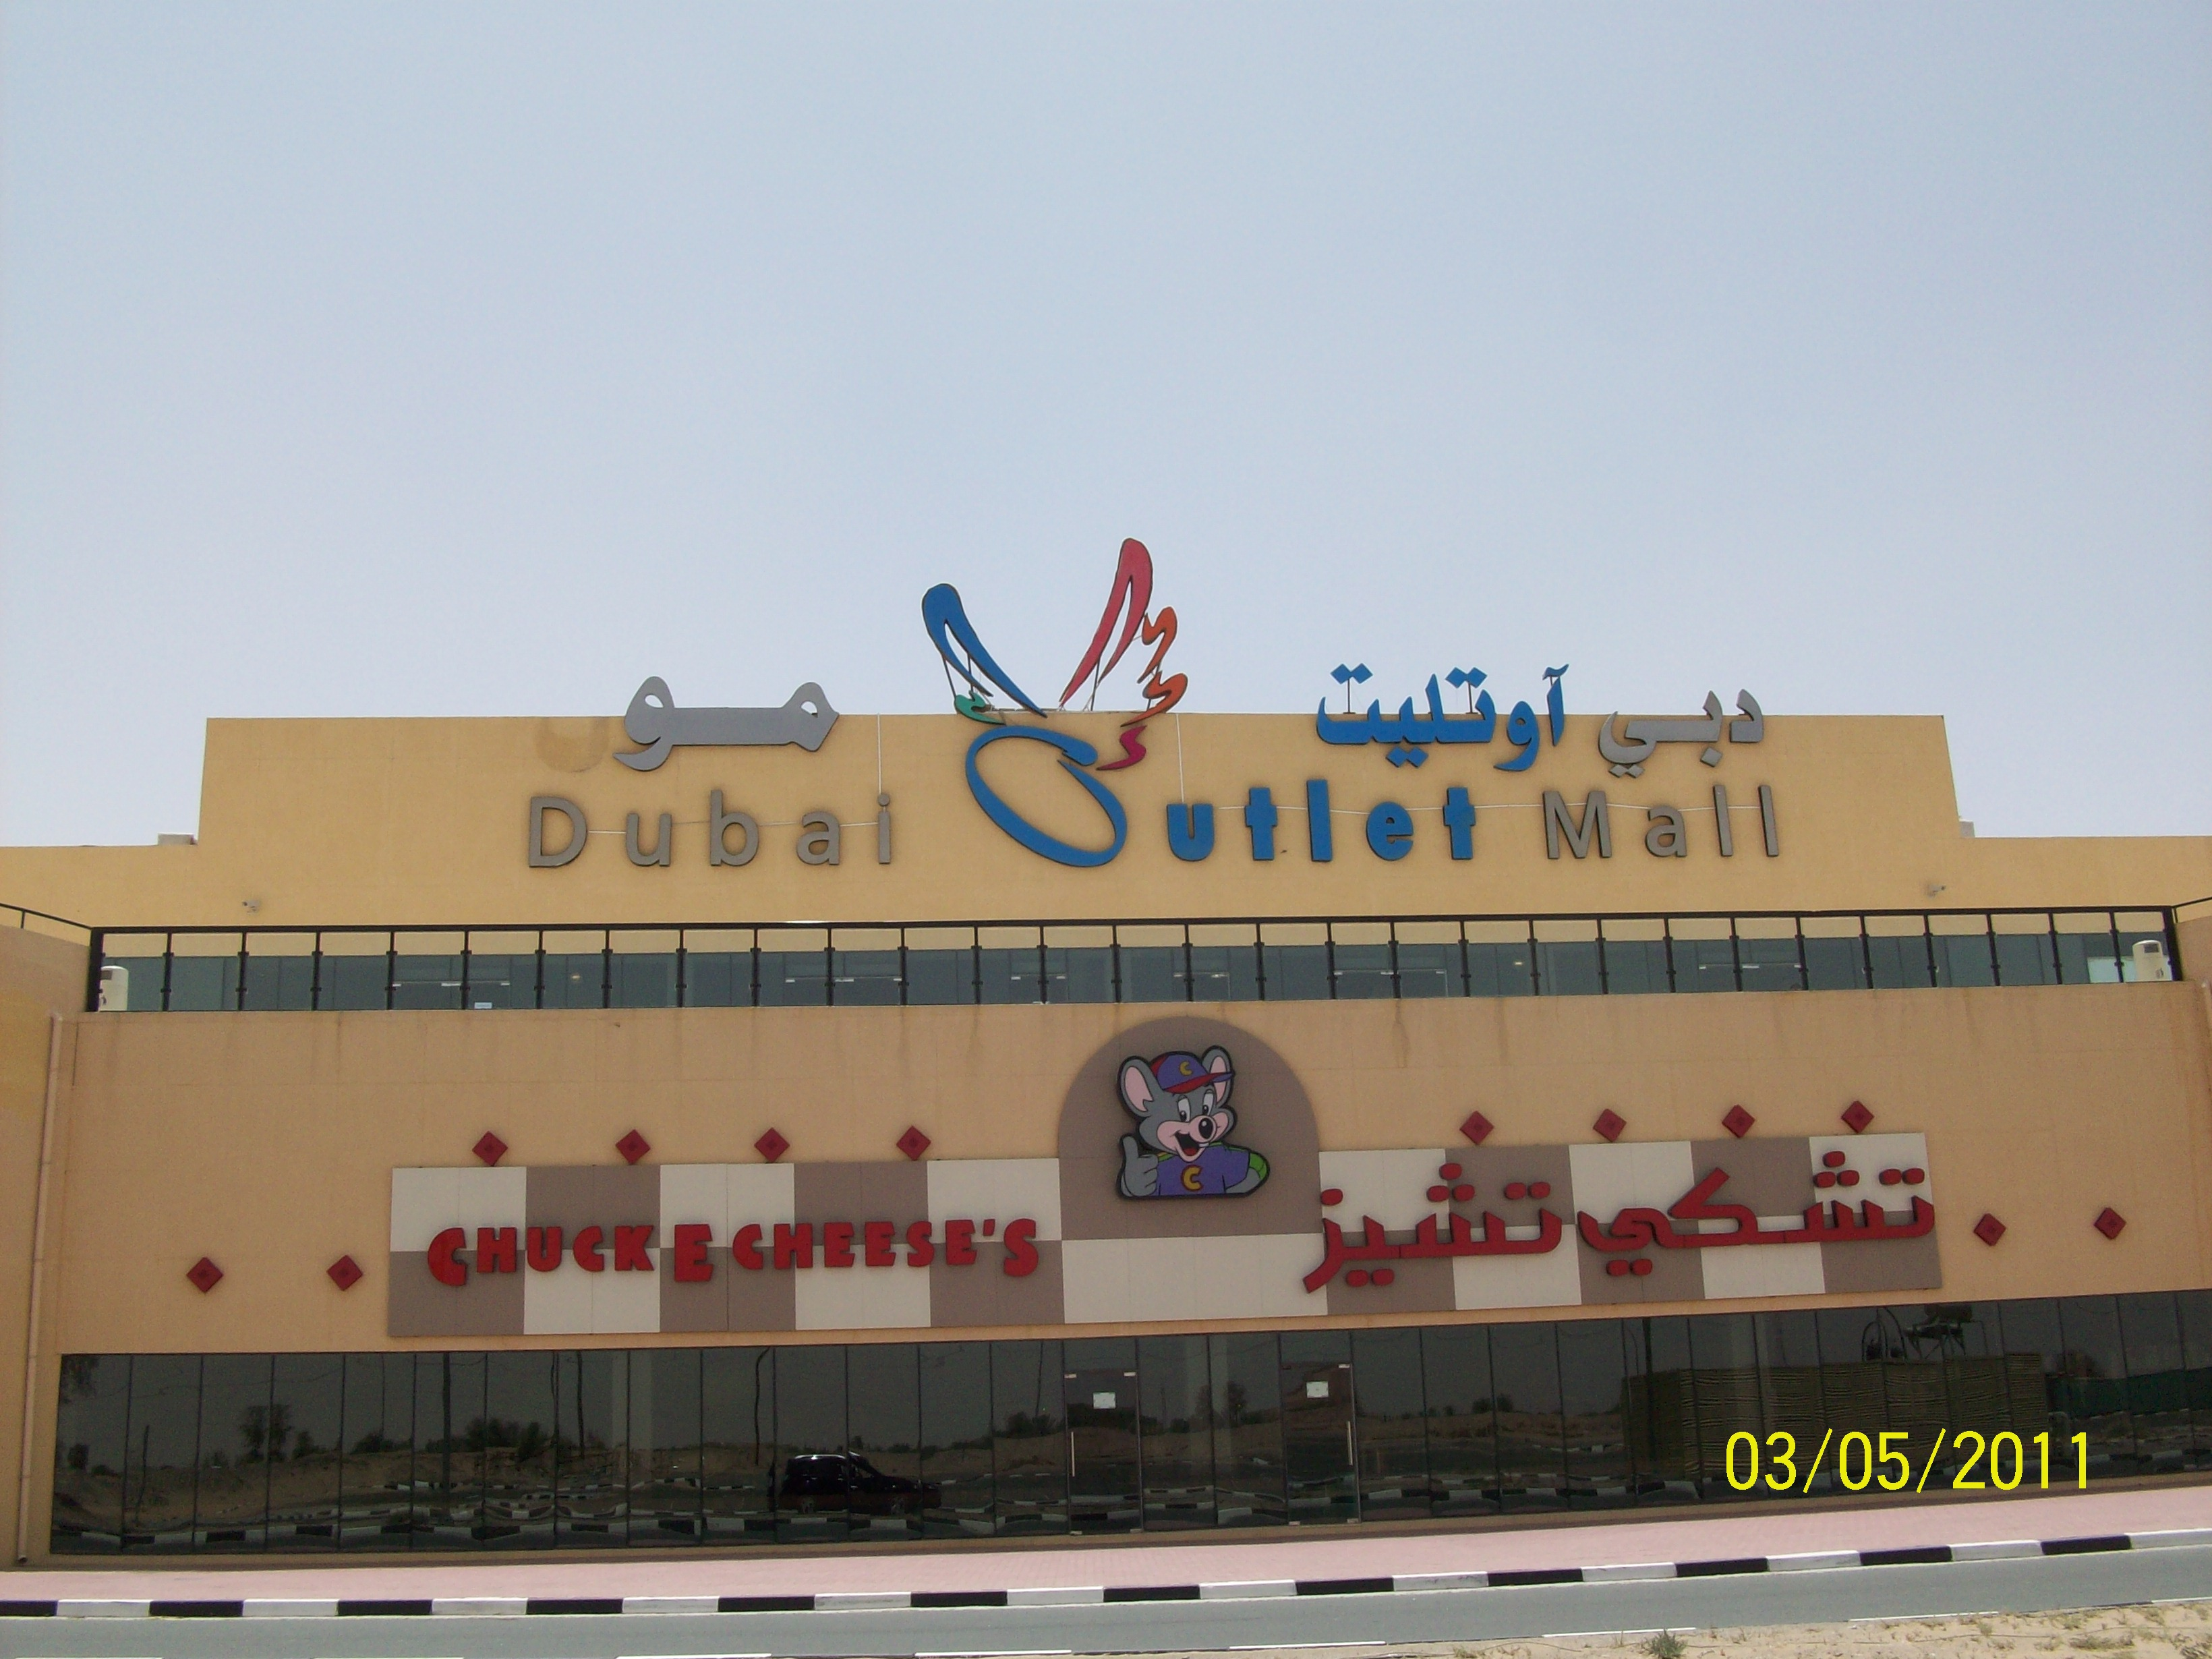 dubai outlet mall emirate of dubai